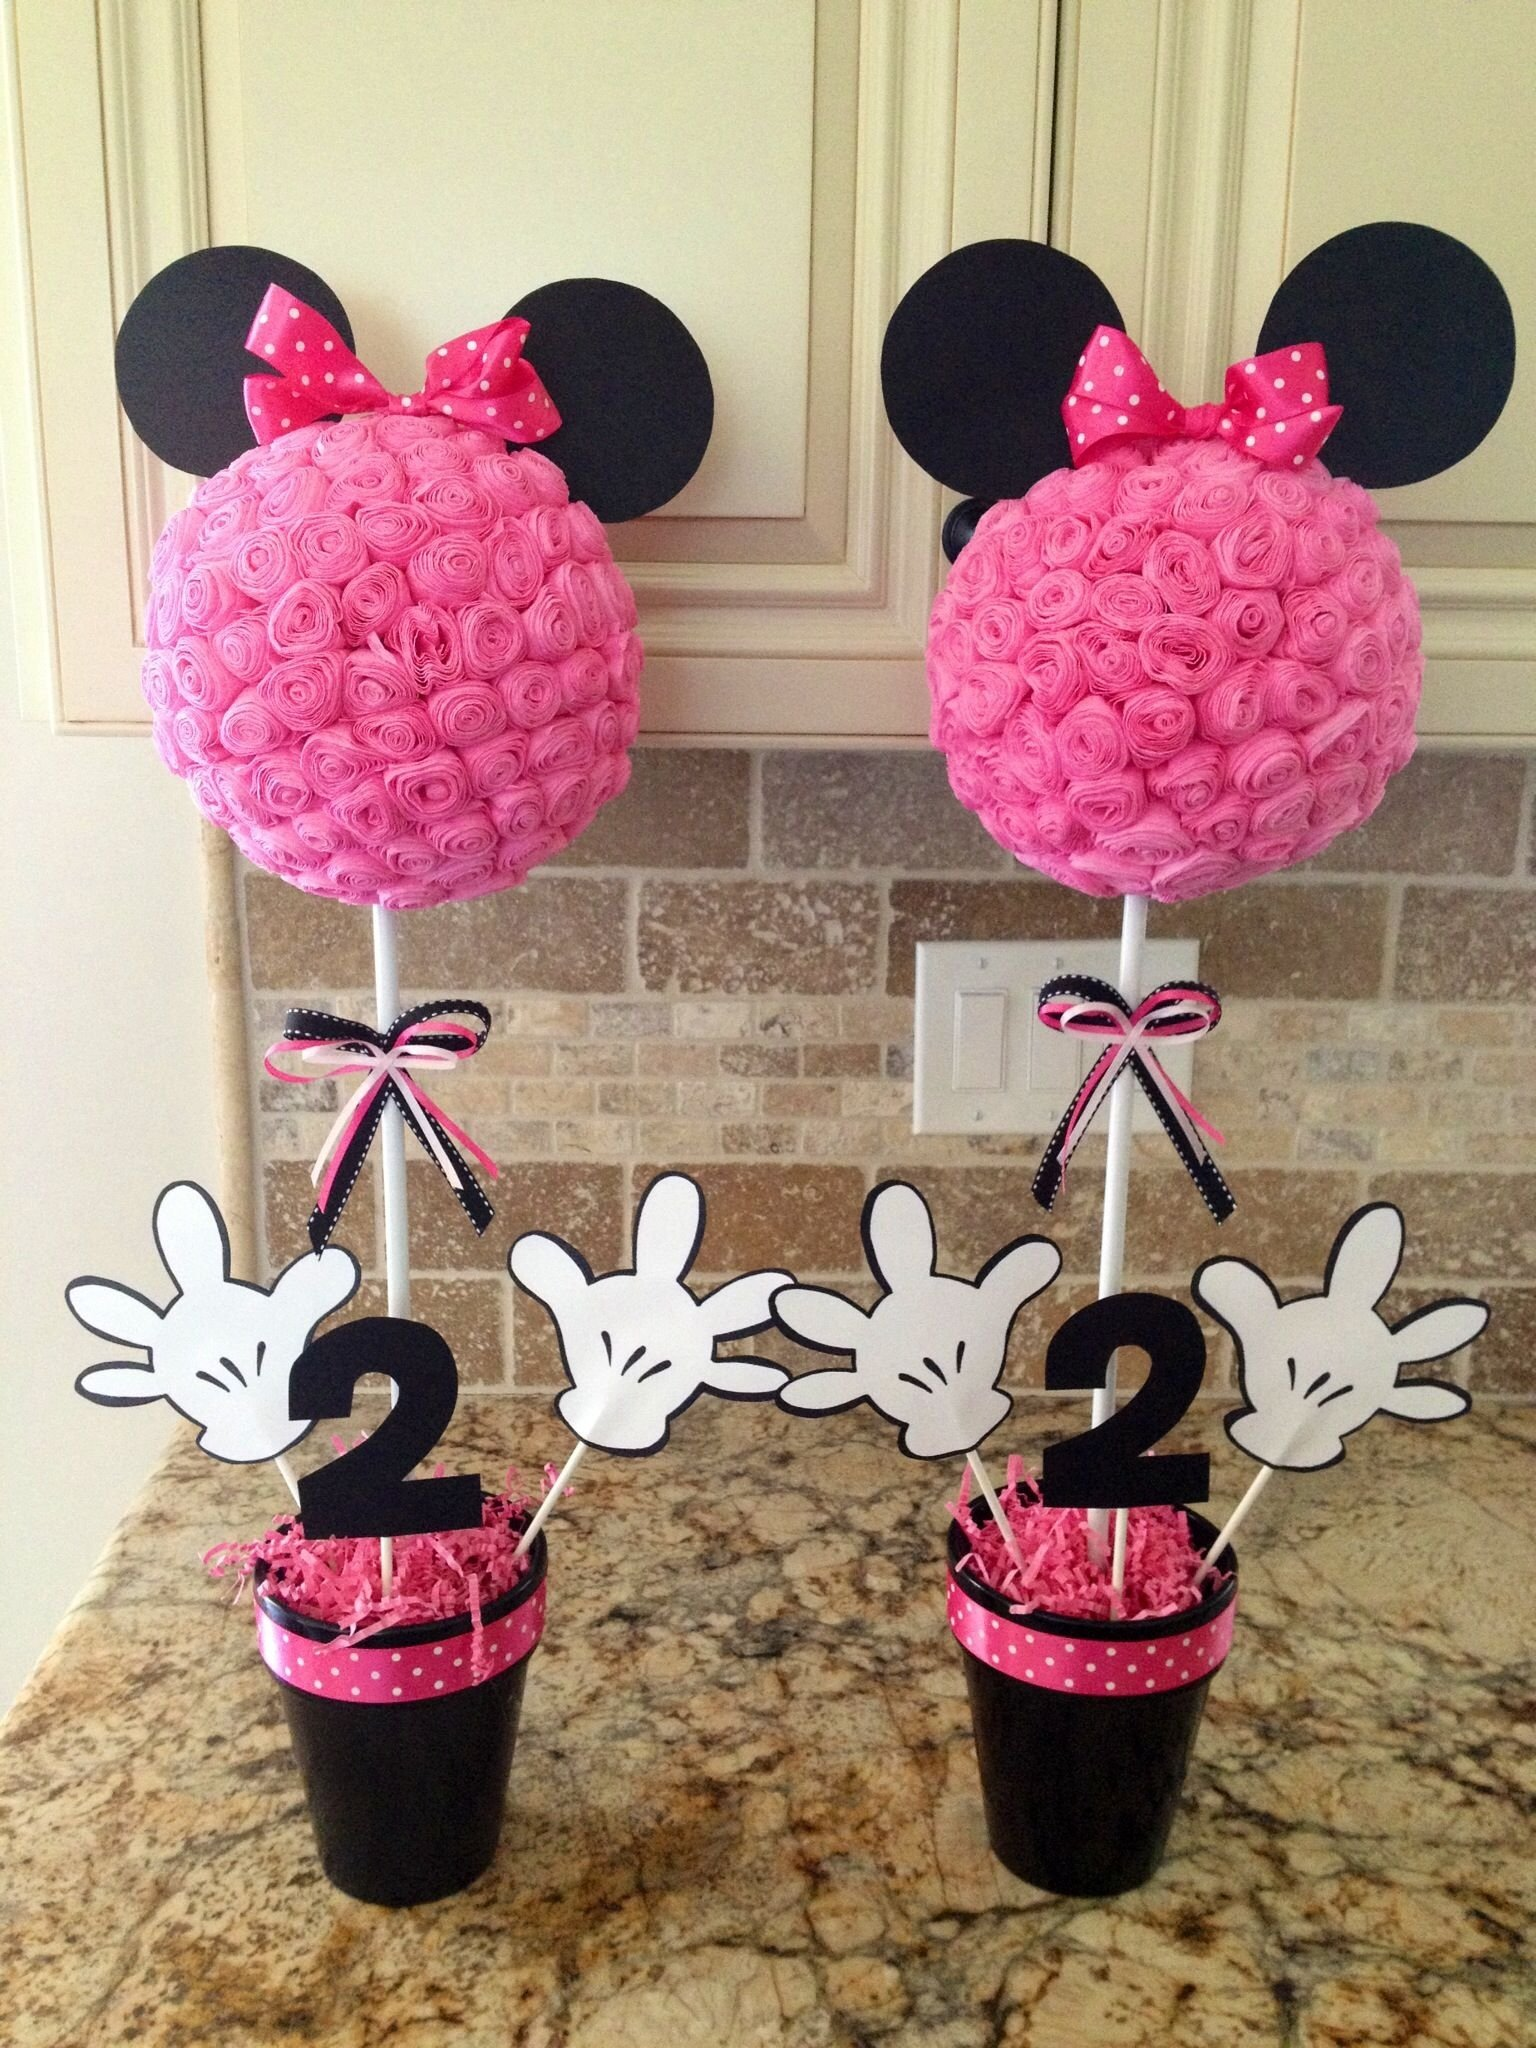 10 Ideal Ideas For Minnie Mouse Birthday Party minnie mouse centerpieces minnie mouse pinterest minnie mouse 1 2020